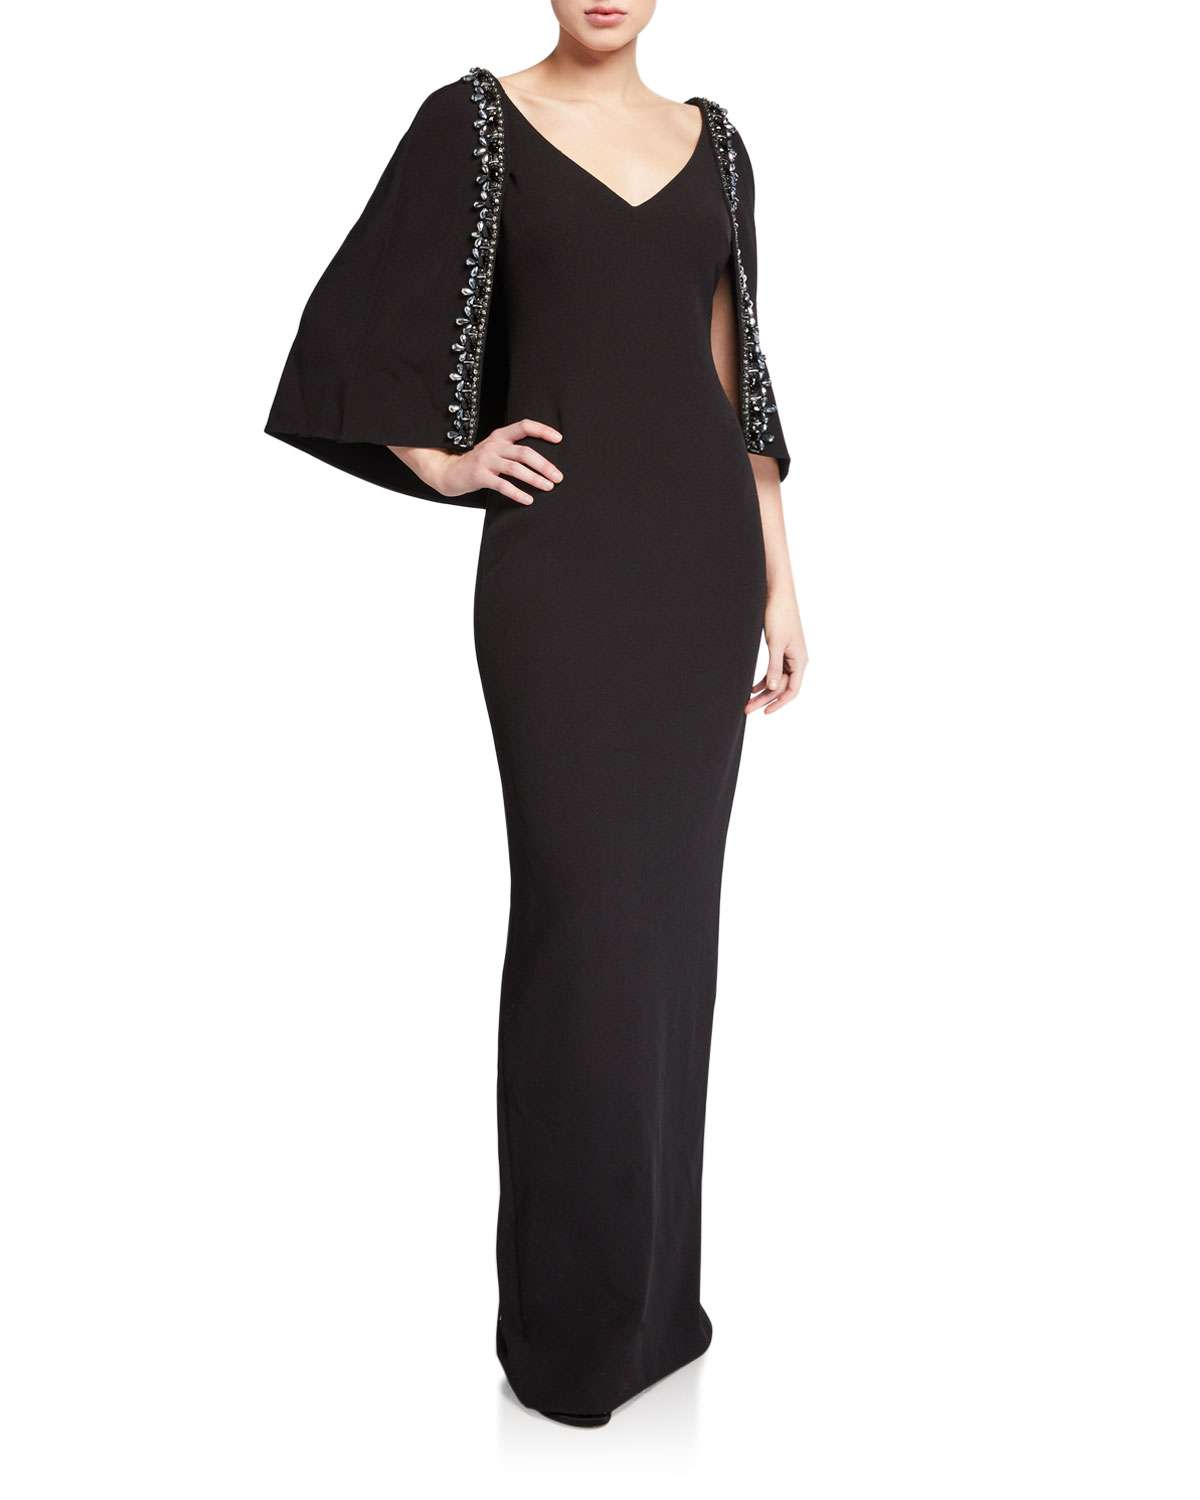 V-Neck Cape Gown with Beaded Trim